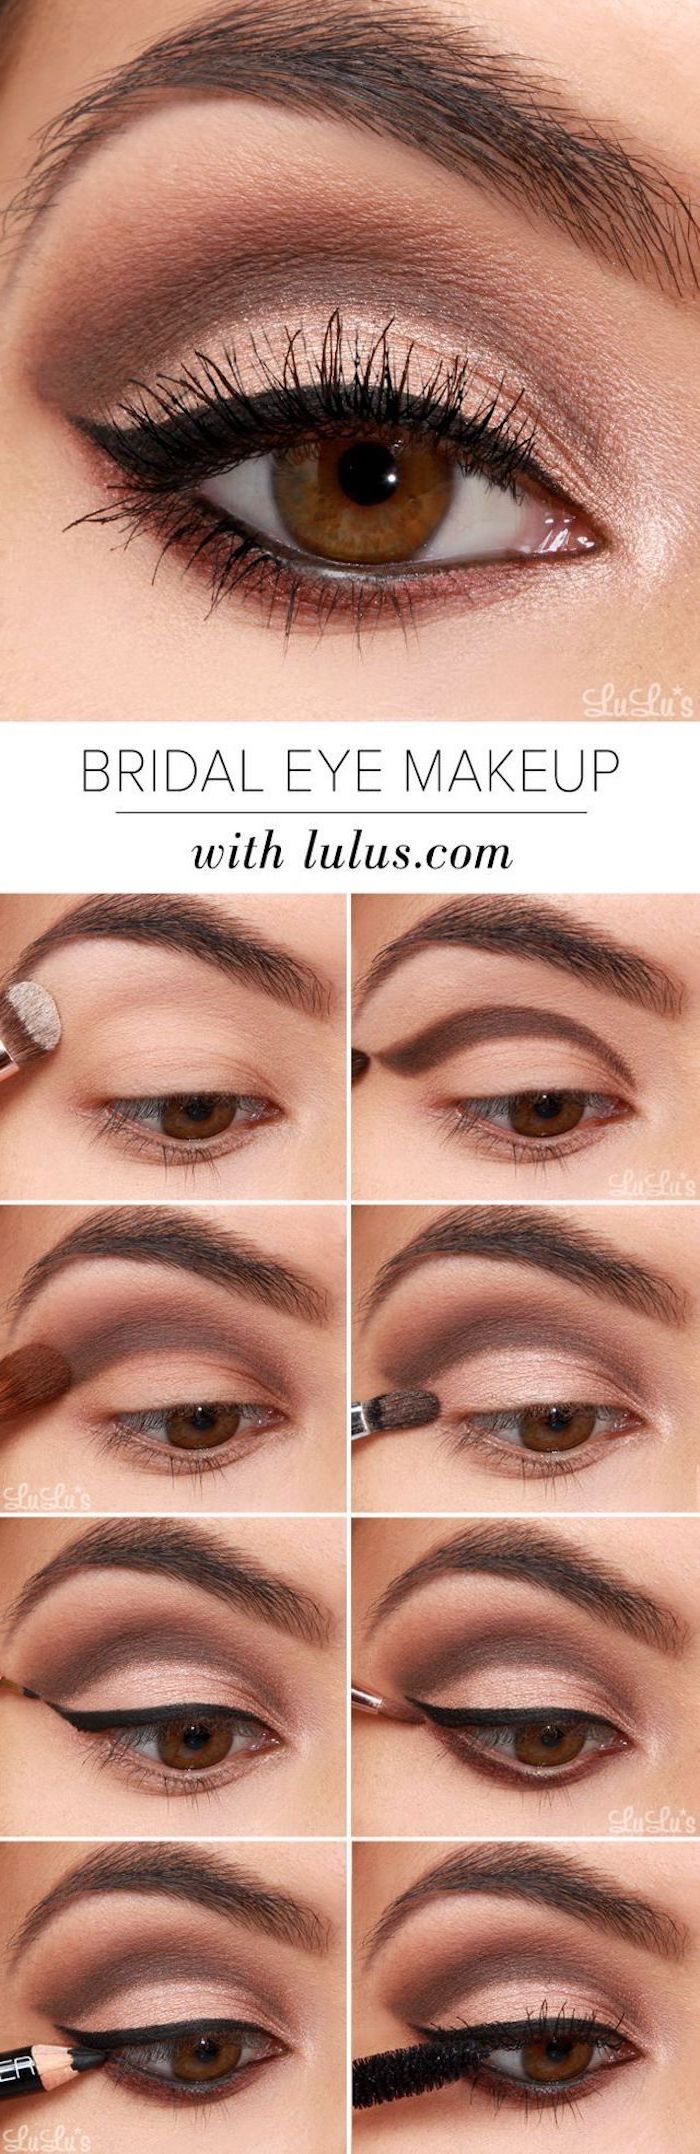 bridal eye makeup, step by step diy tutorial, eyeshadow tutorial, nude and golden eyeshadow colors, black cat eyeliner